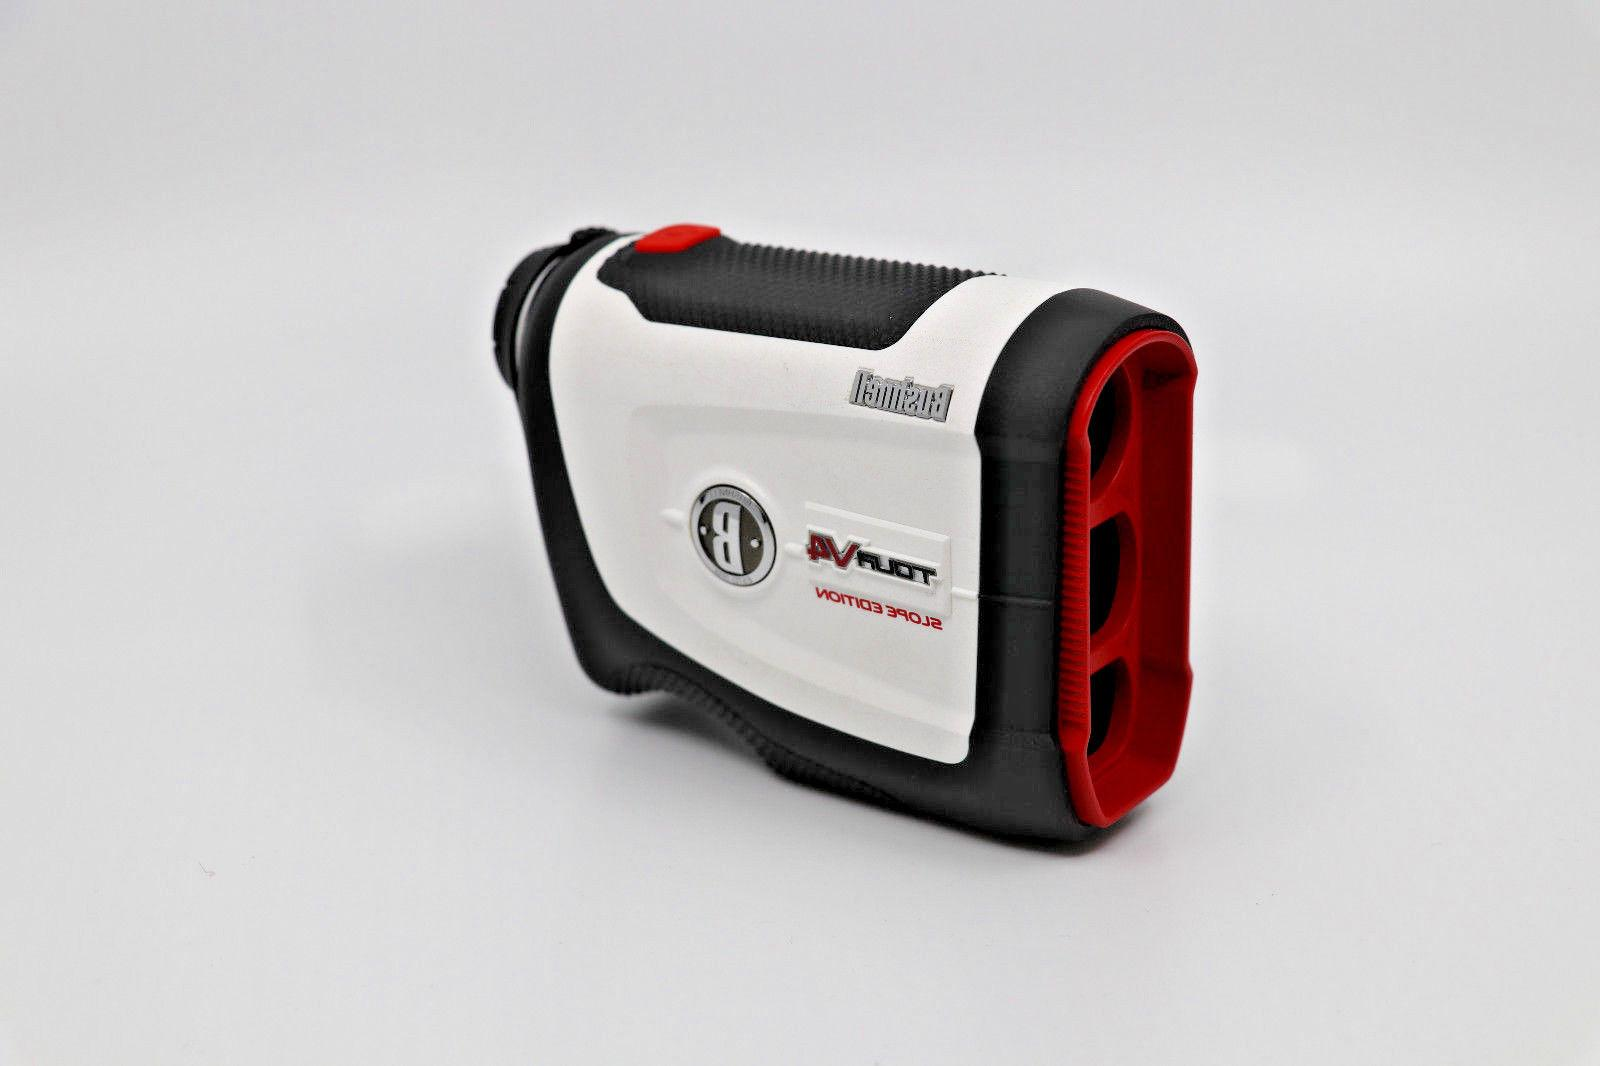 tour v4 shift slope edition laser rangefinder